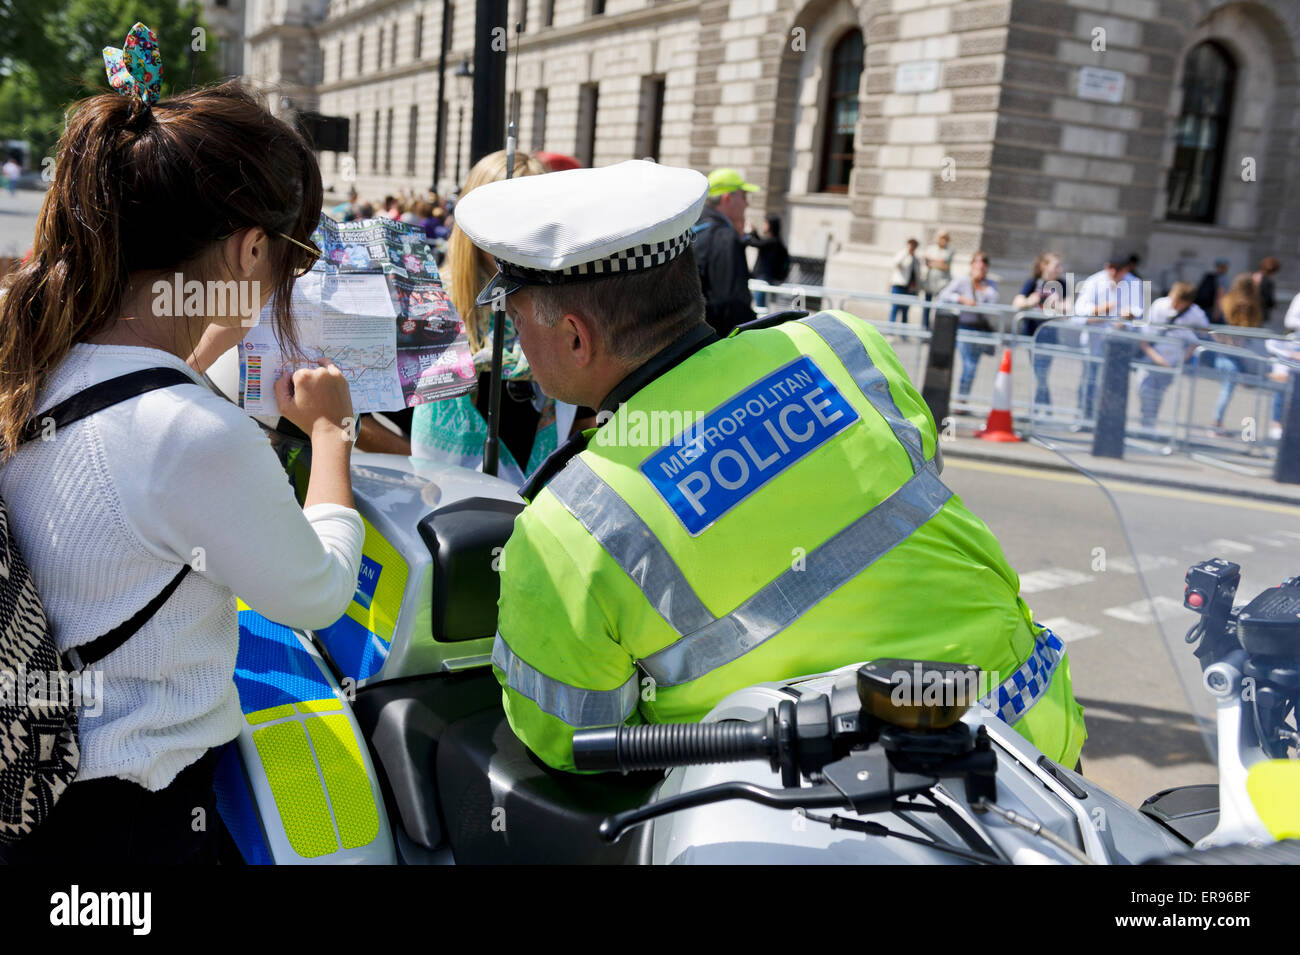 A male traffic police officer in bright yellow jacket with high powered motorbike talking to three young women, - Stock Image